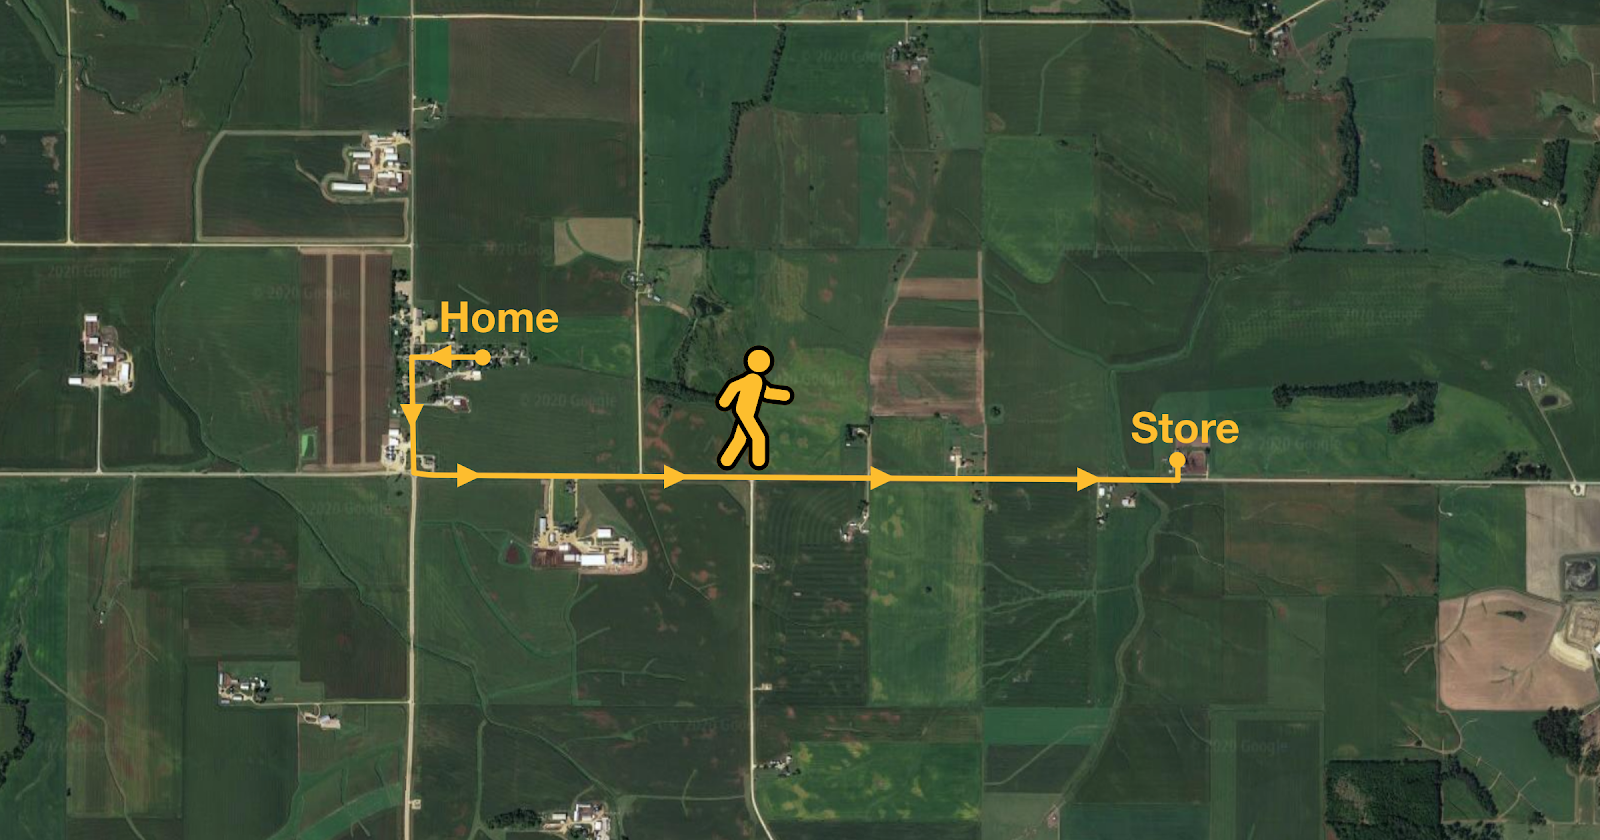 """A arial view map with a route from """"home"""" to """"store"""" with a stick man walking along it."""